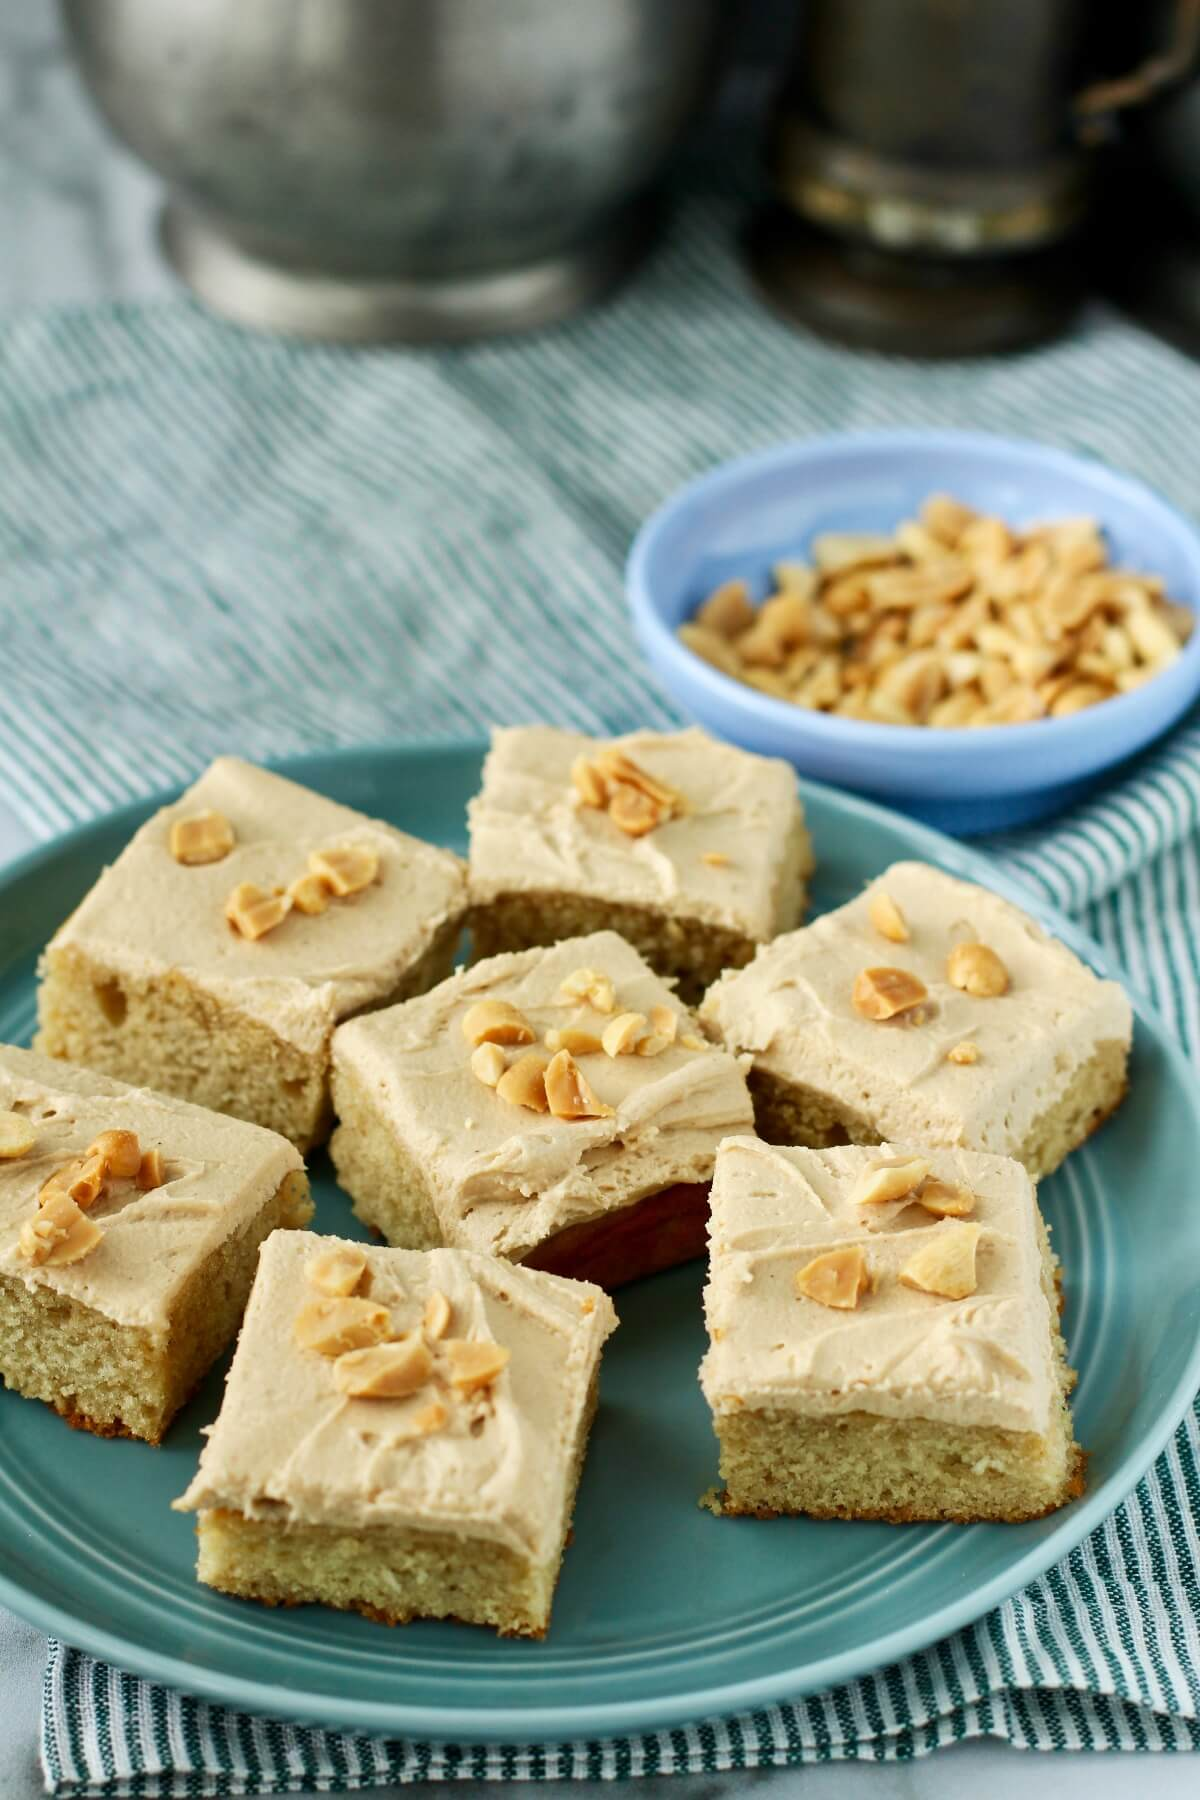 Peanut Butter Snack Cake with peanut butter frosting